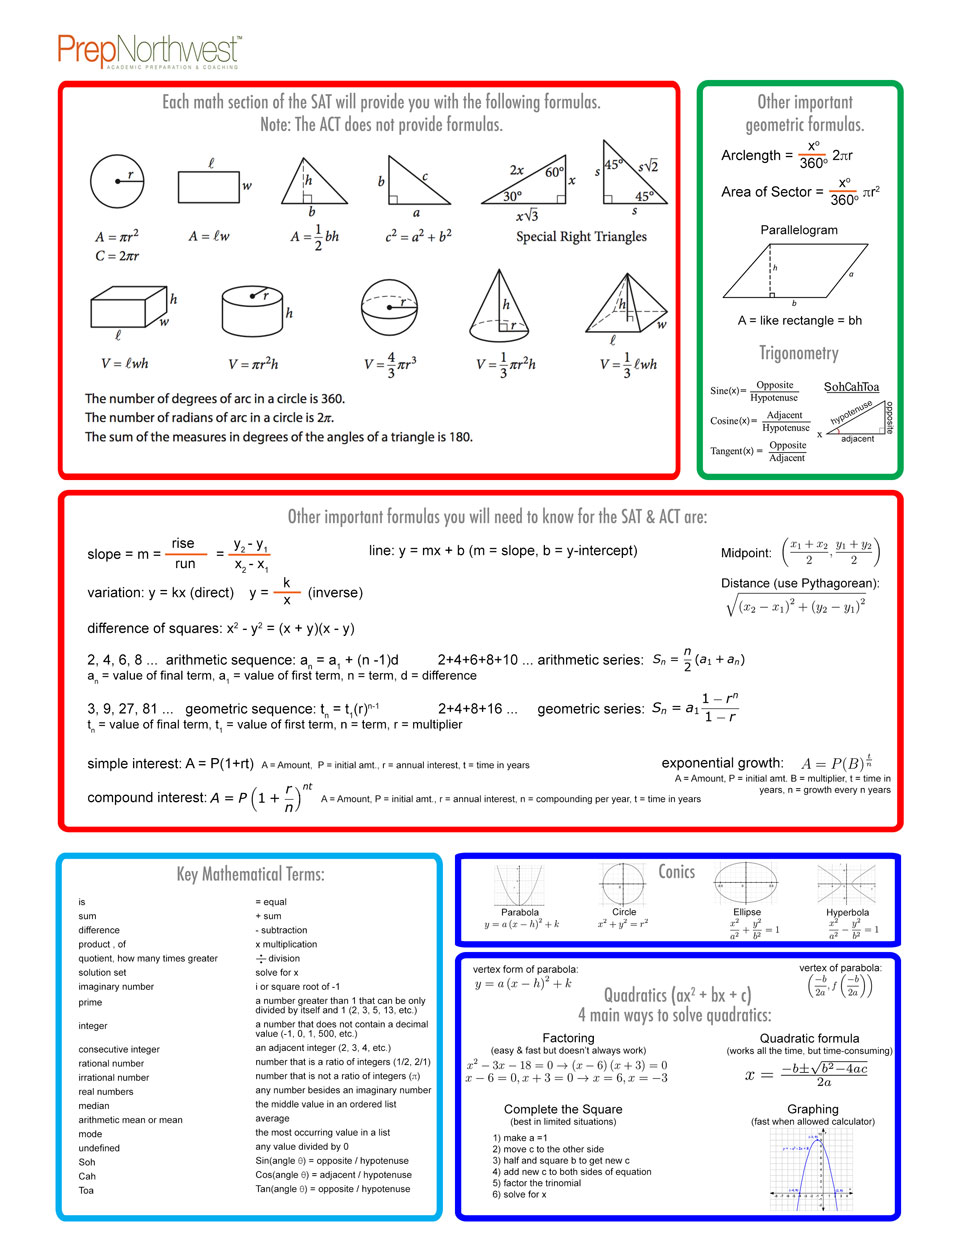 math worksheet : prepnorthwest  math help : Act Math Practice Worksheet